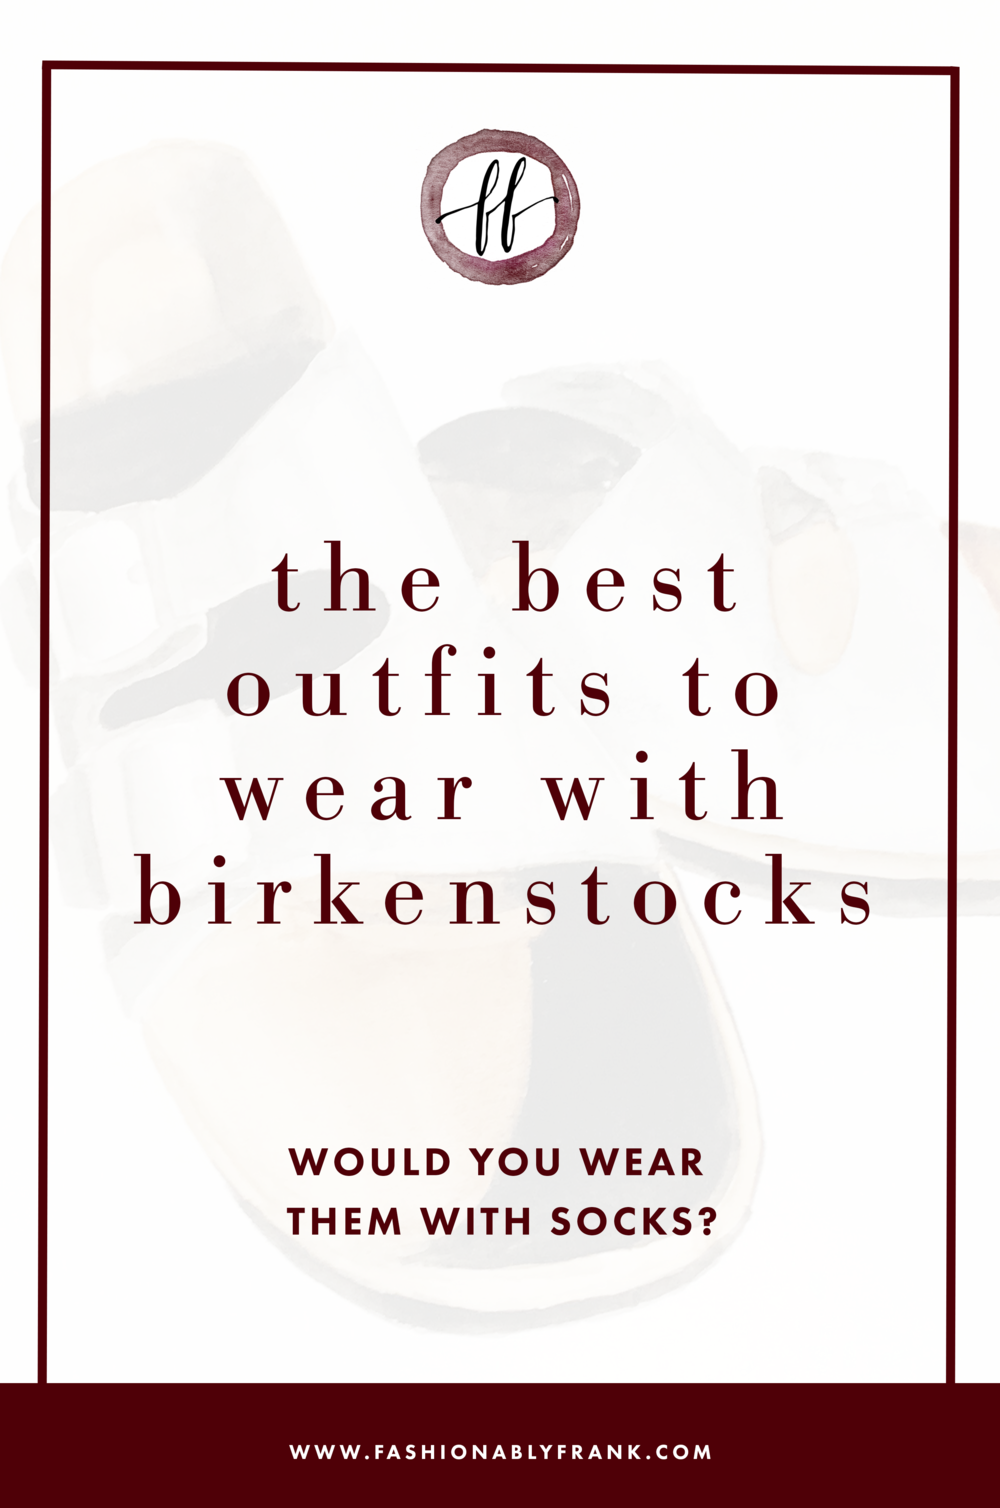 Best Outfits to Wear with Birkenstocks